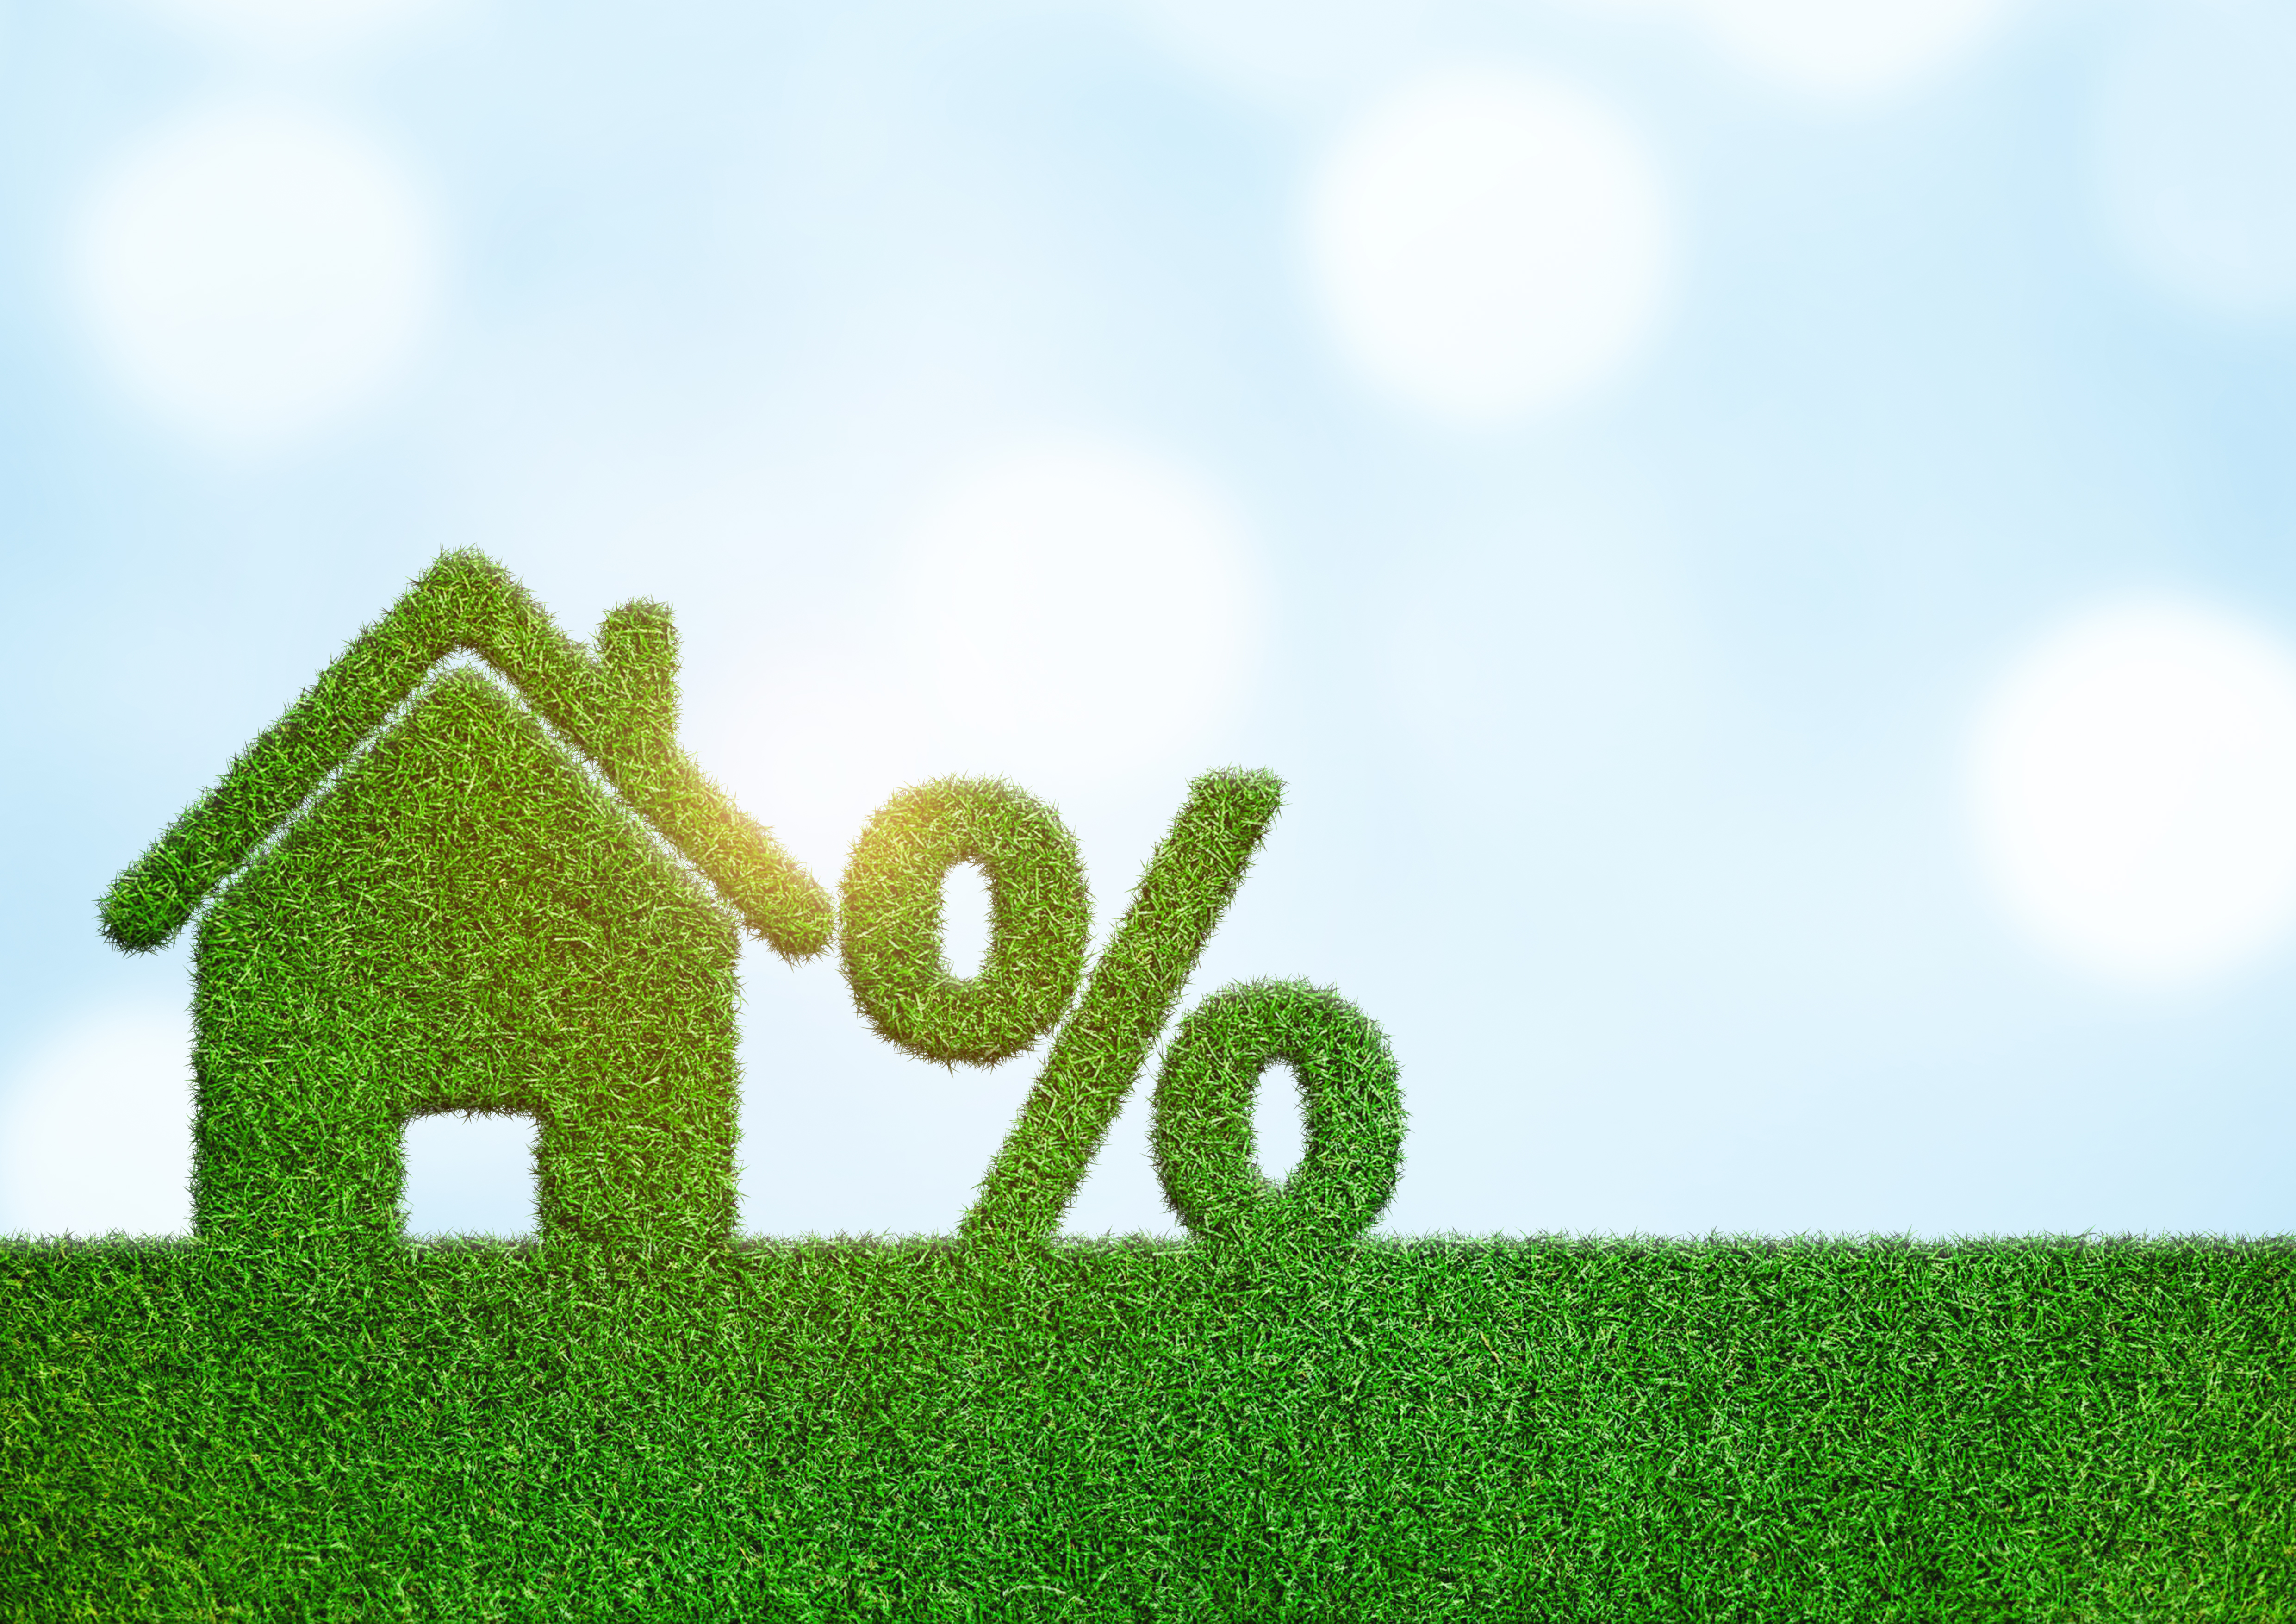 Property investment and house mortgage financial real estate concept